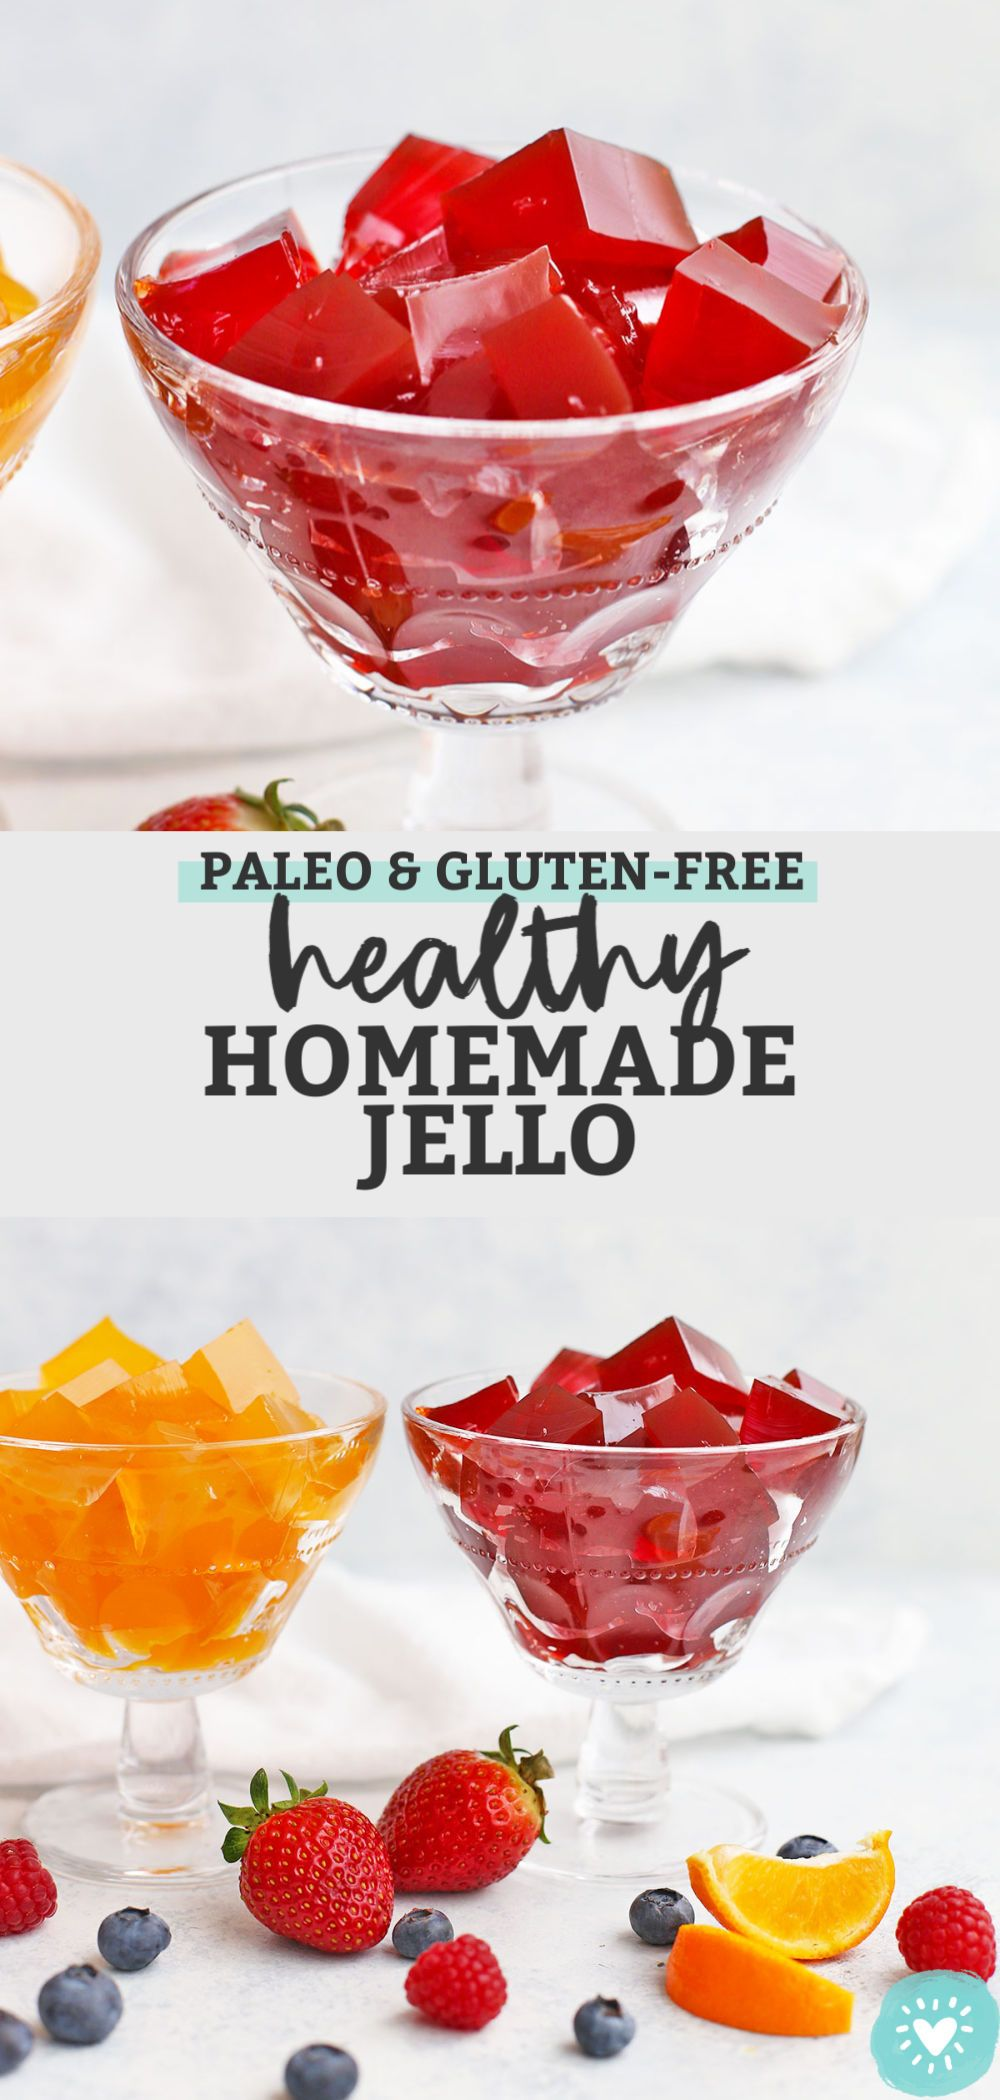 How to Make Homemade Healthy Homemade Jello Recipe in